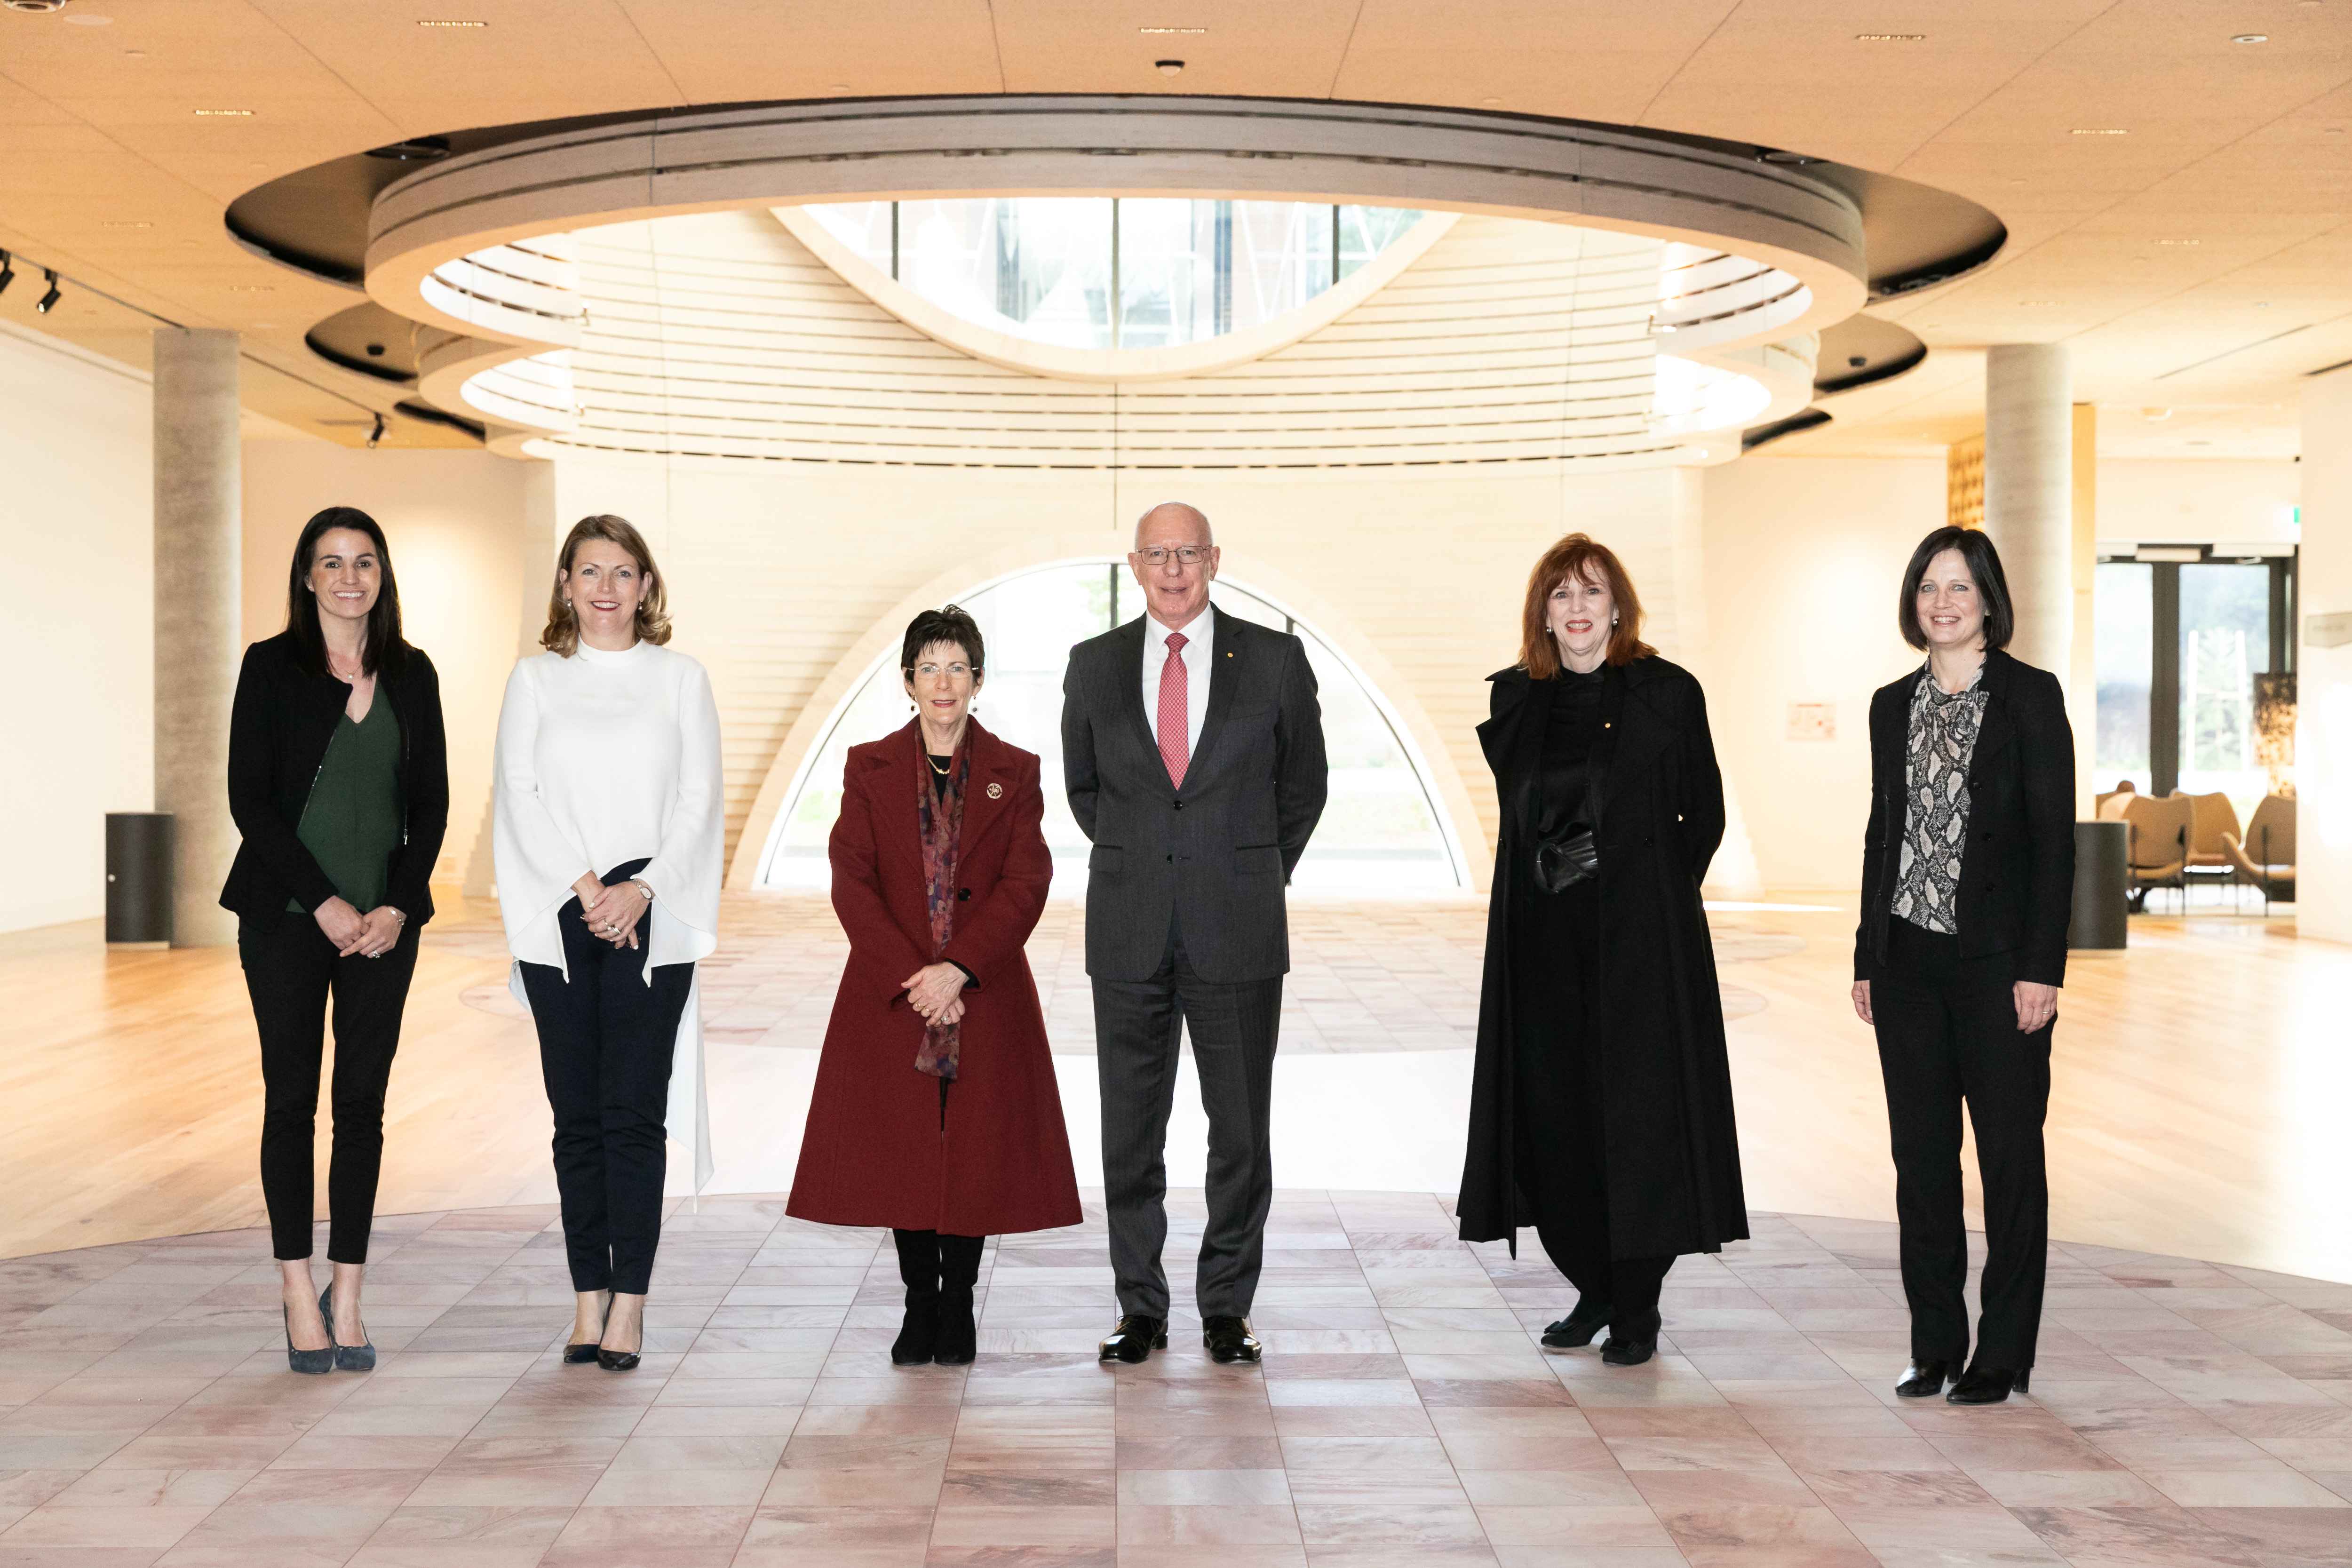 Associate Professor Kate Fitz-Gibbon, Professor Sharon Pickering, Mrs Linda Hurley, His Excellency Governor-General David Hurley, Professor Margaret Gardner, Professor Jacqui True